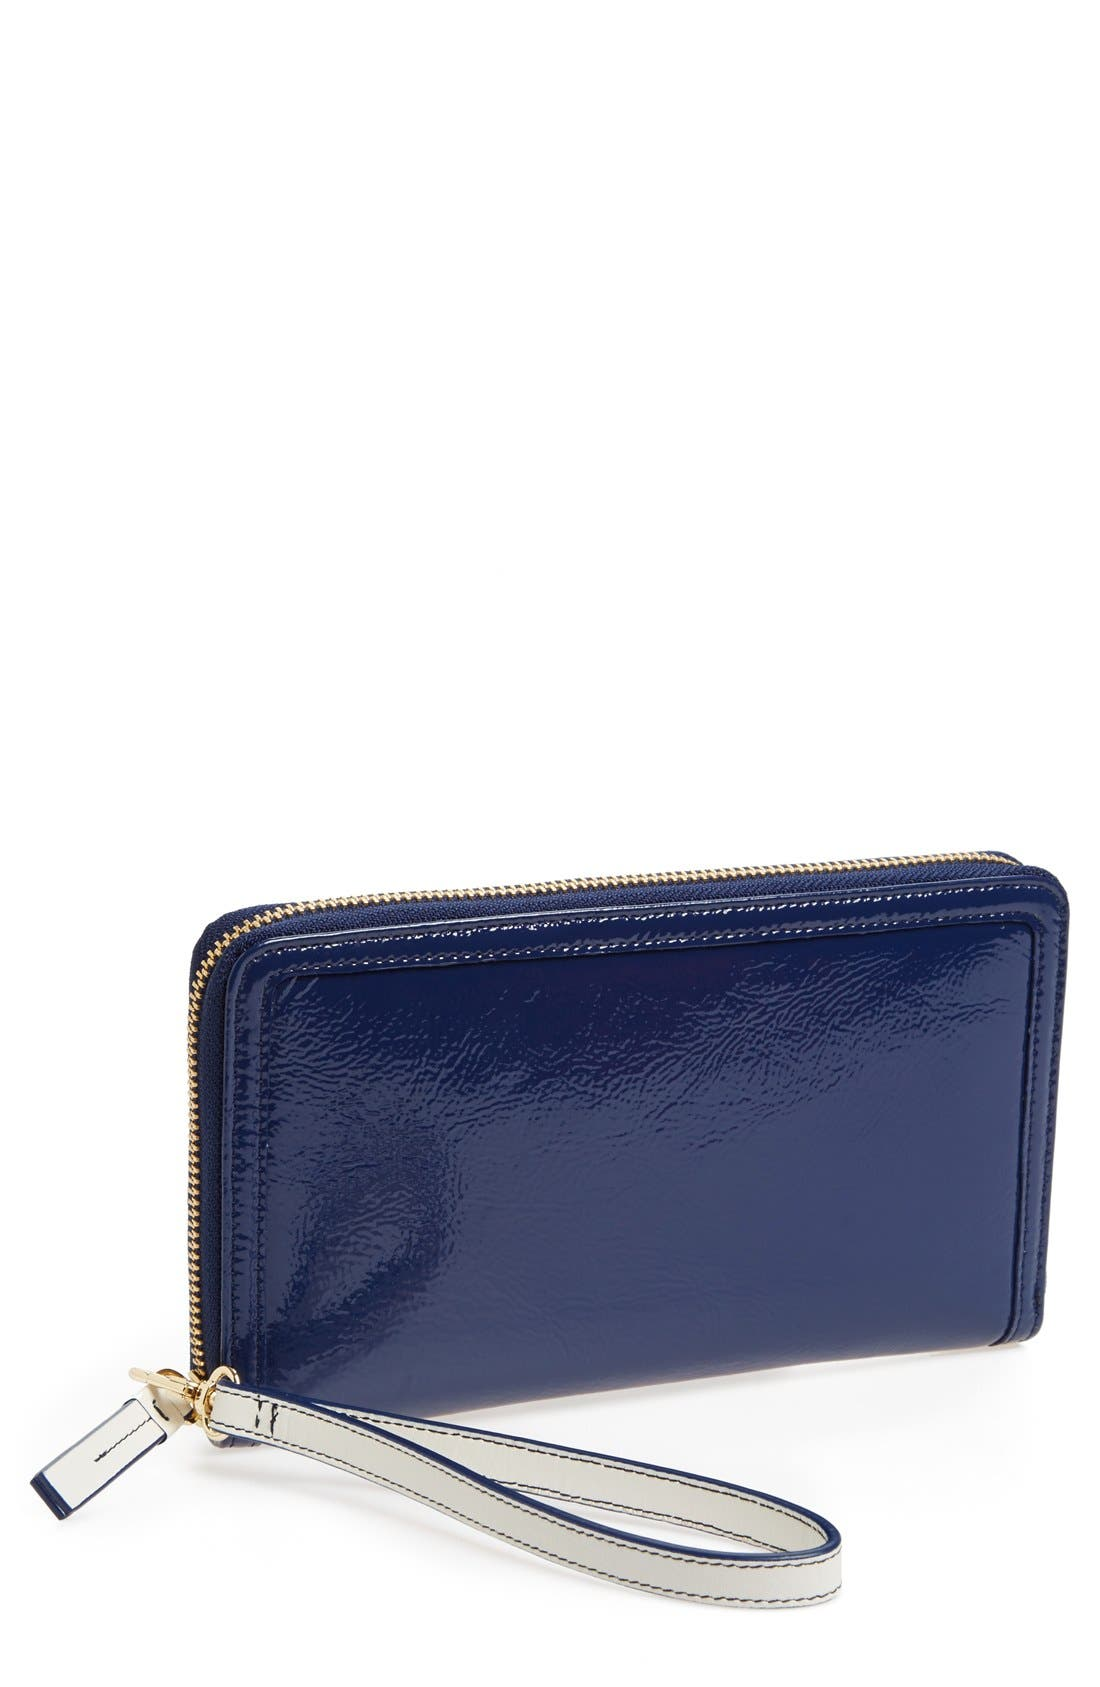 Alternate Image 1 Selected - Halogen® Patent Leather Zip-Around Wallet